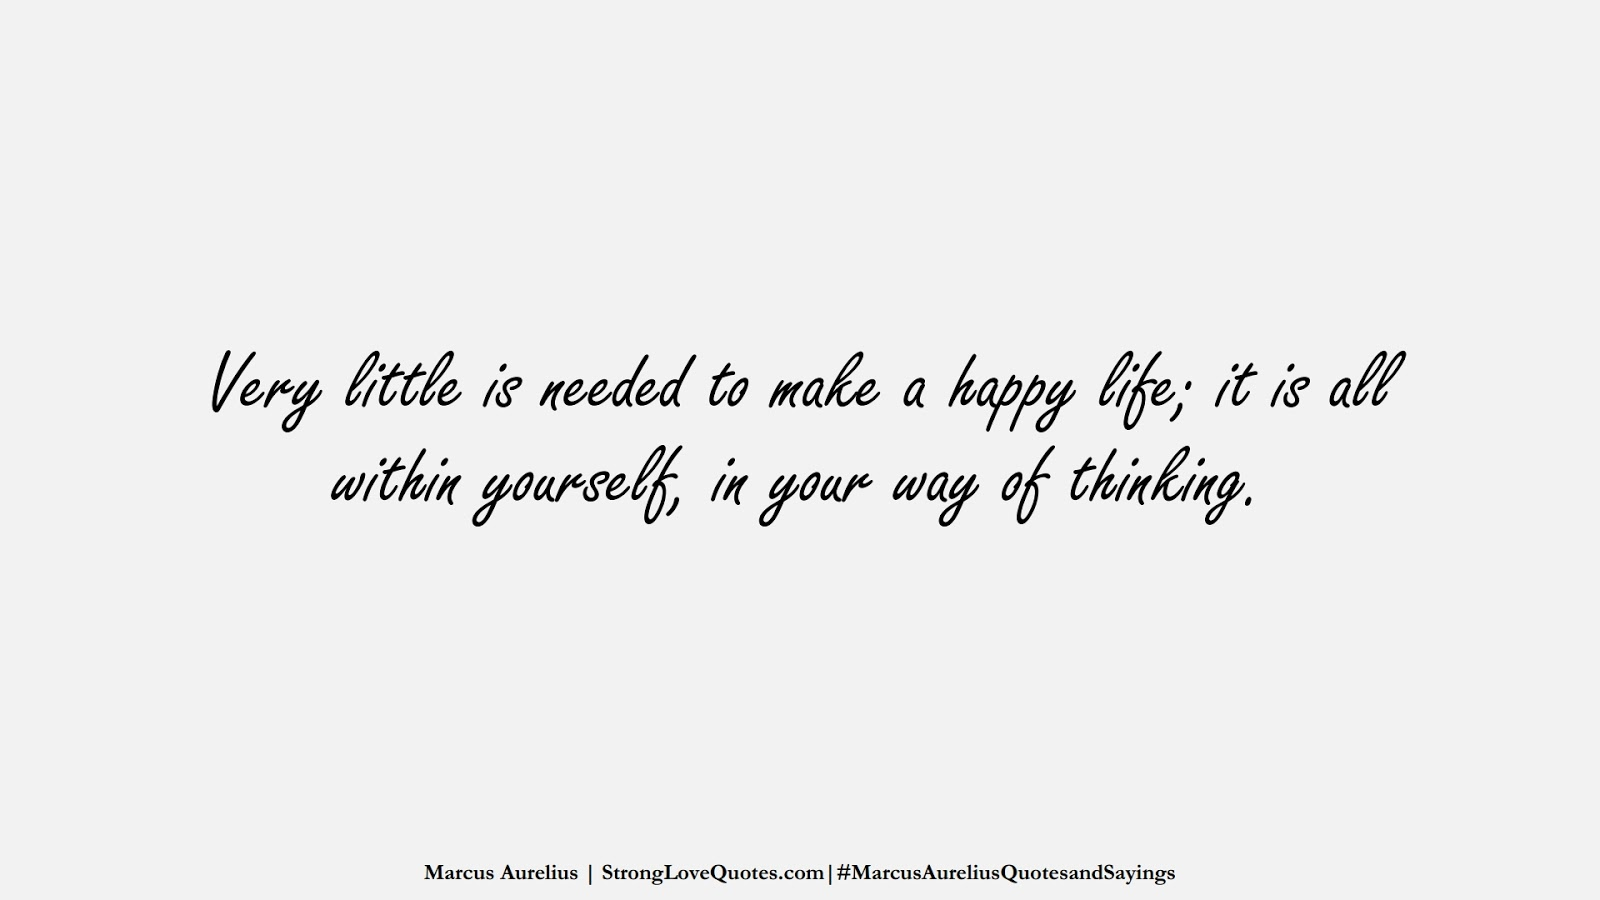 Very little is needed to make a happy life; it is all within yourself, in your way of thinking. (Marcus Aurelius);  #MarcusAureliusQuotesandSayings